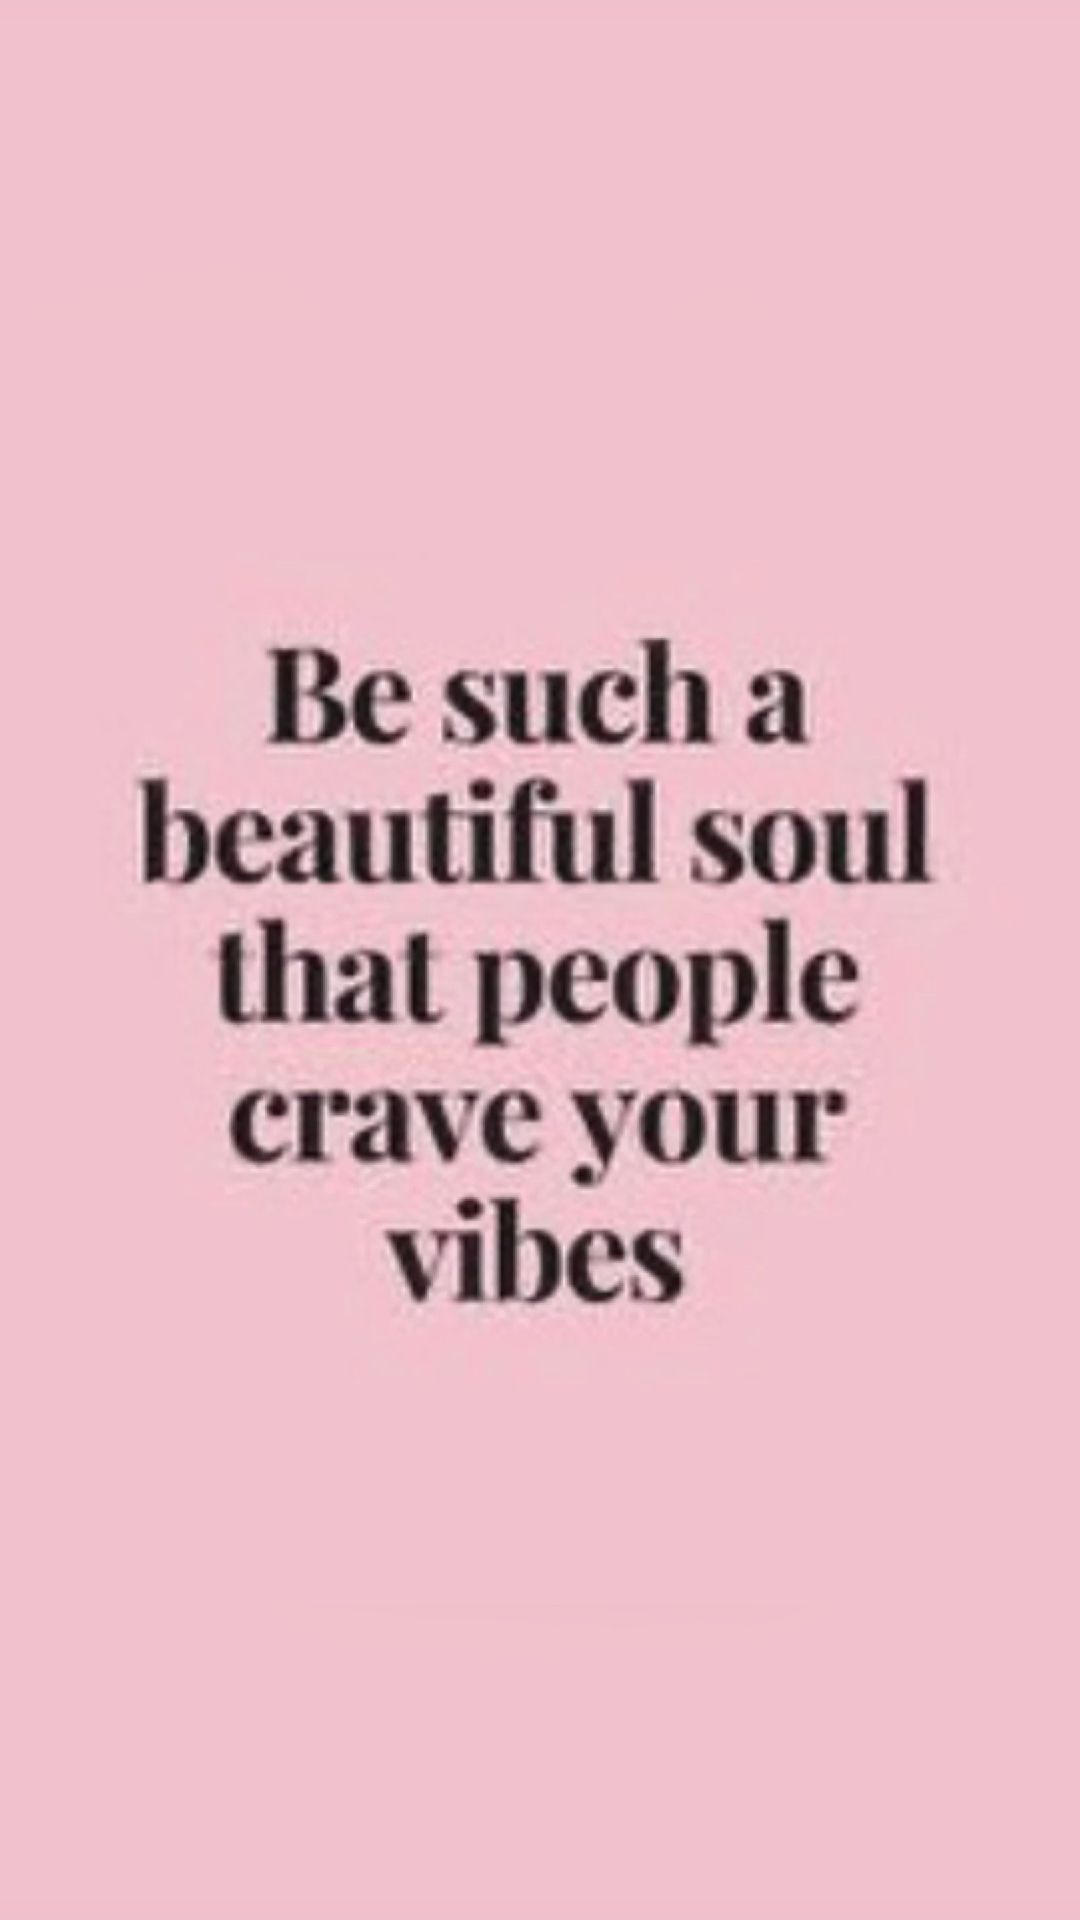 Be kind and have the good vibes